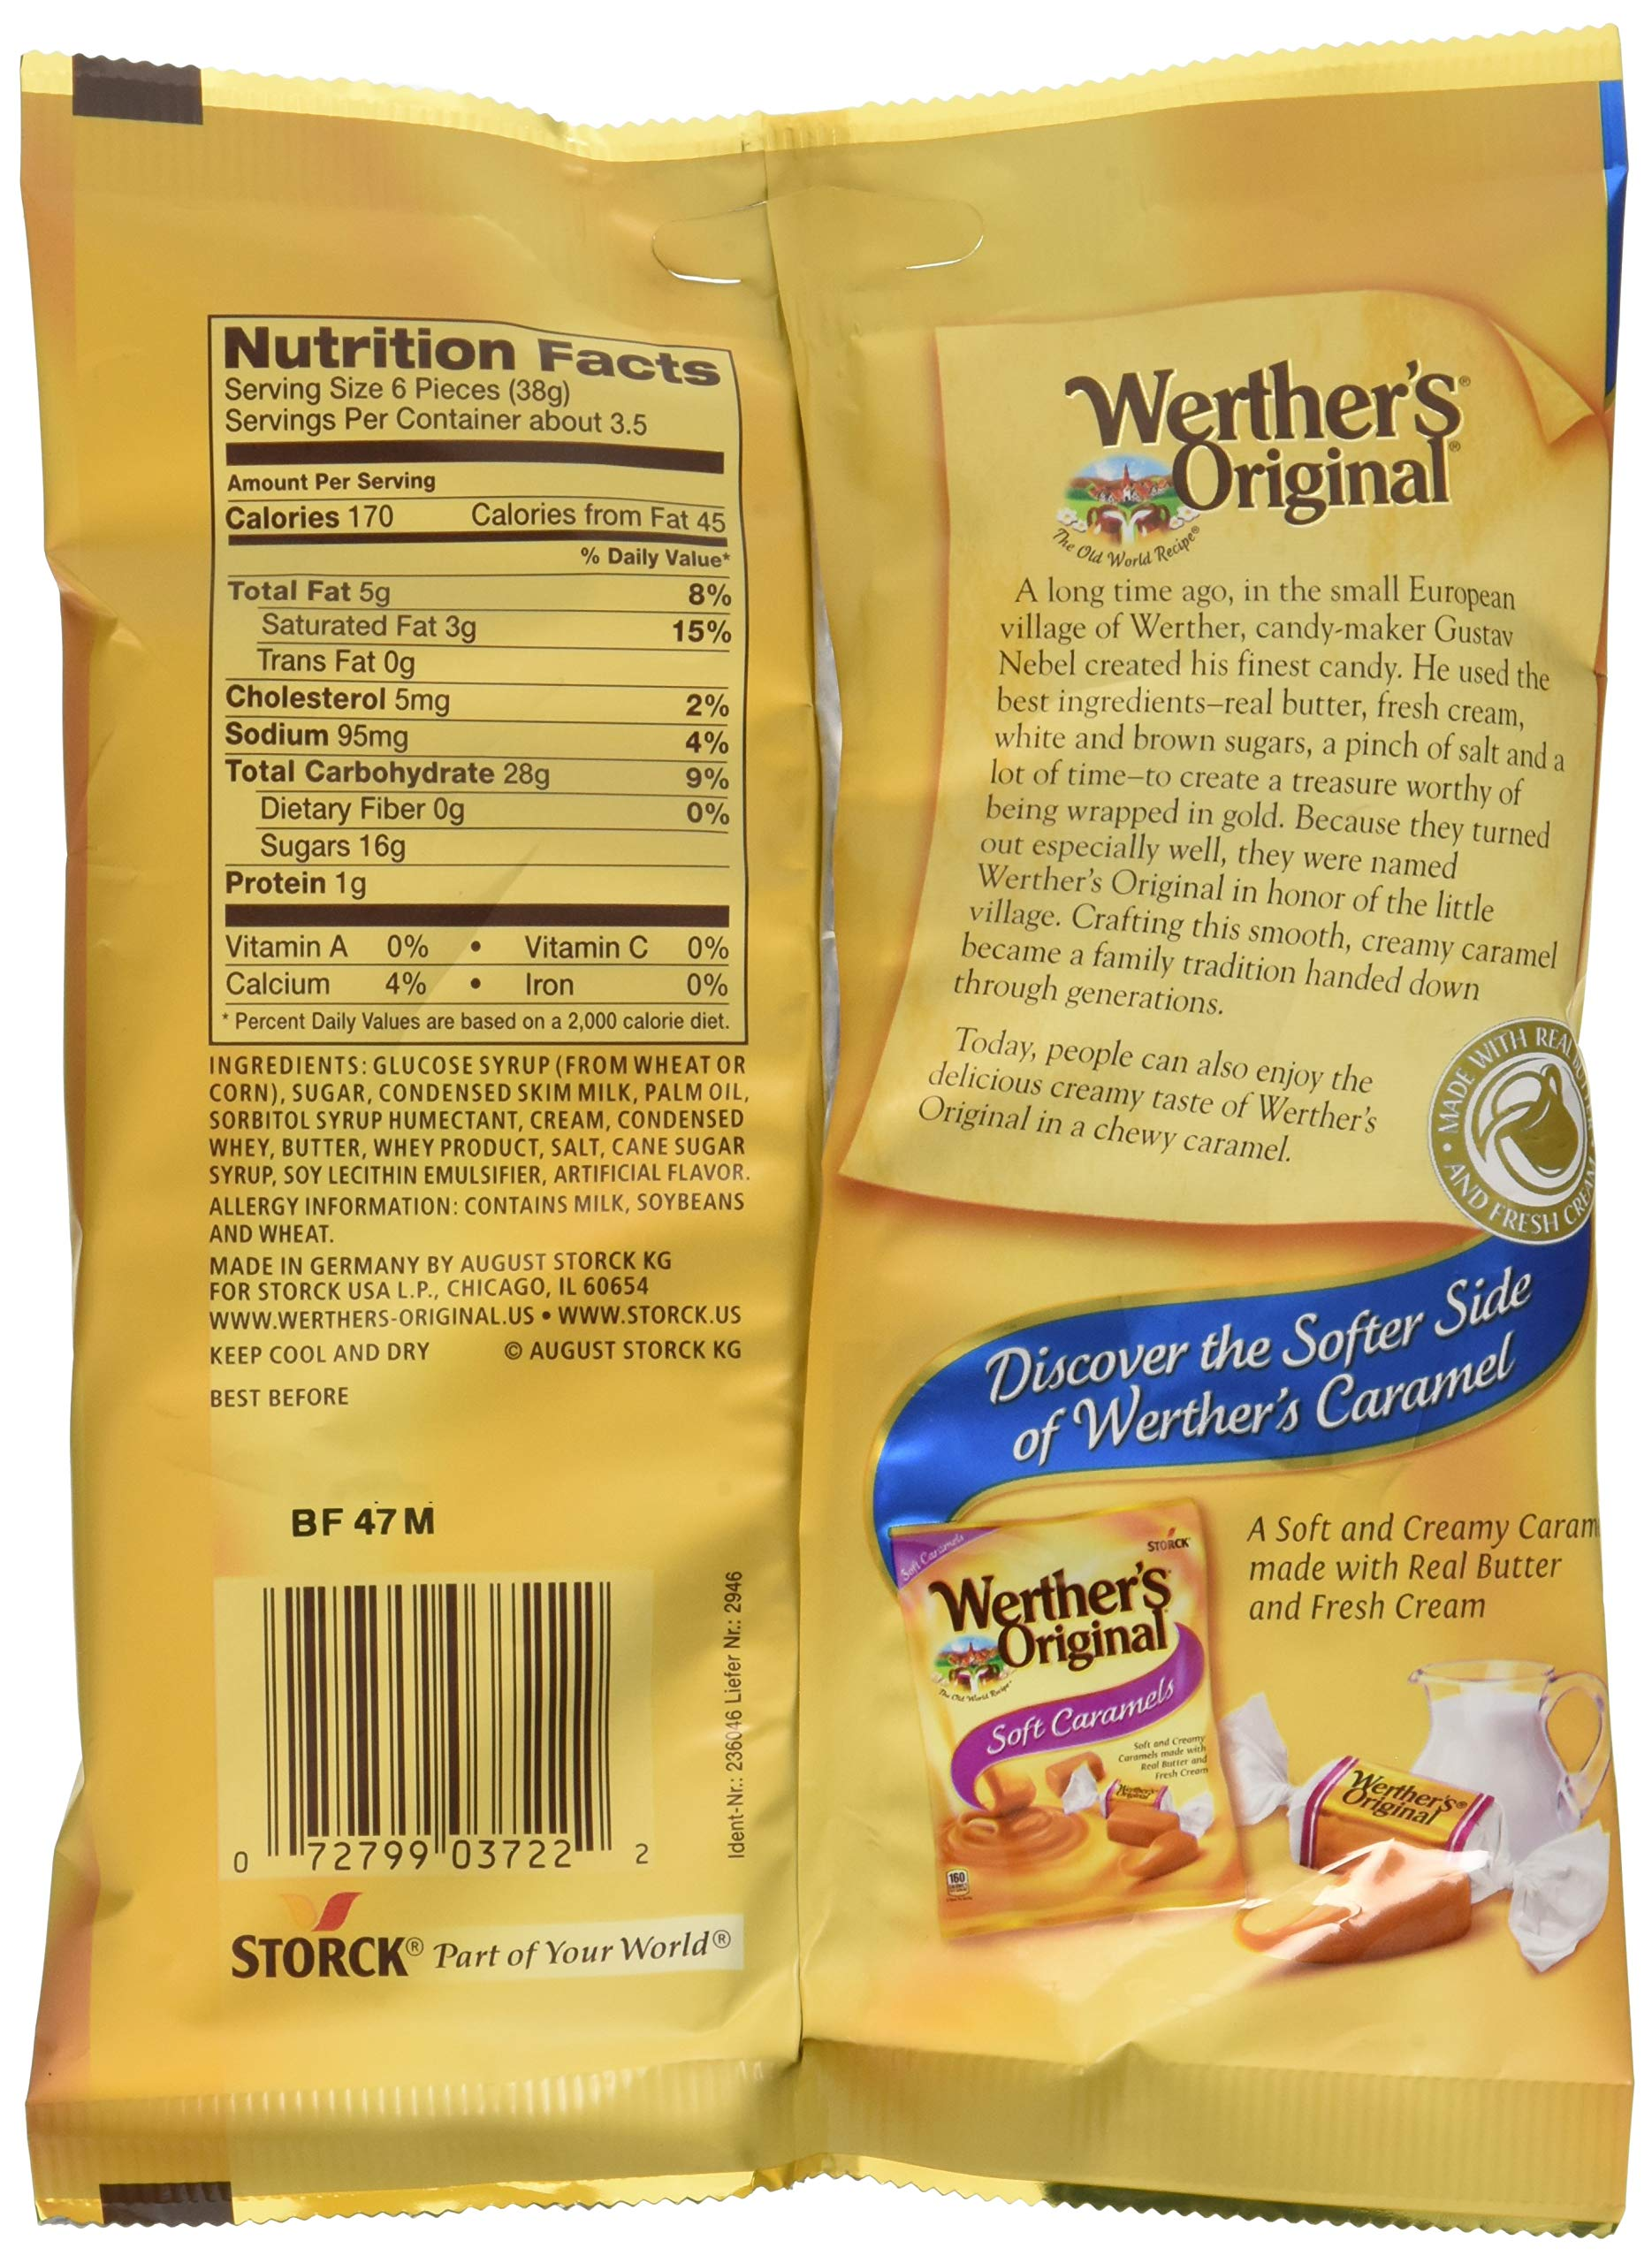 WERTHER'S ORIGINAL Chewy Caramels, 5.0 Ounce Bags (Pack of 12), Bulk Candy, Individually Wrapped Candy Caramels, Caramel Candy Sweets, Bag of Candy by Werther's (Image #4)